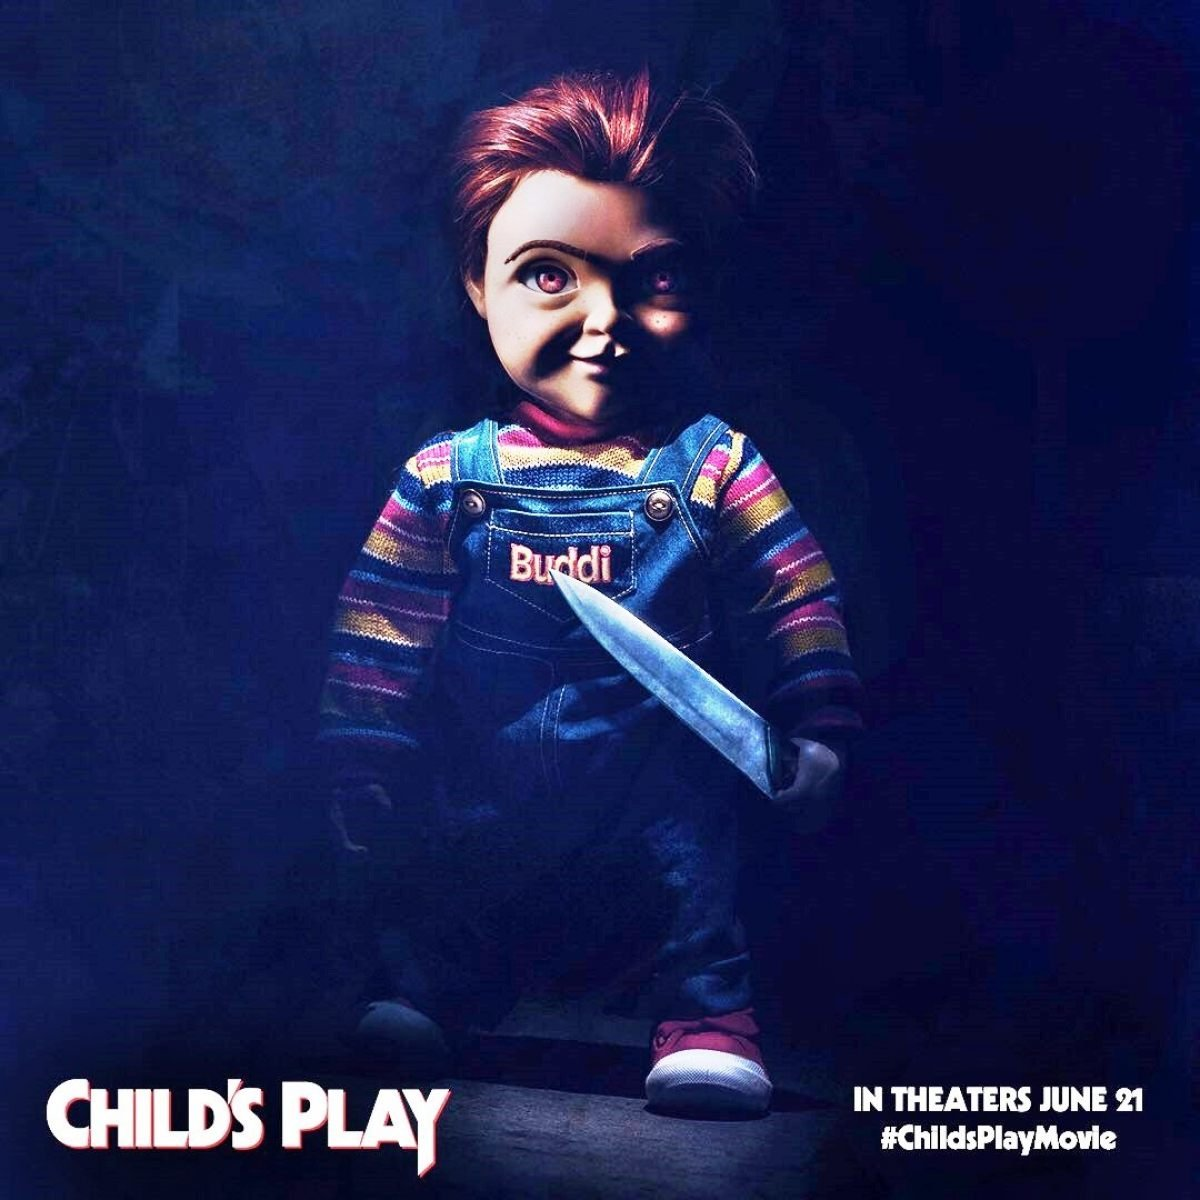 Chucky Wallpapers: Here's What Chucky Will Look Like In The New CHILD'S PLAY